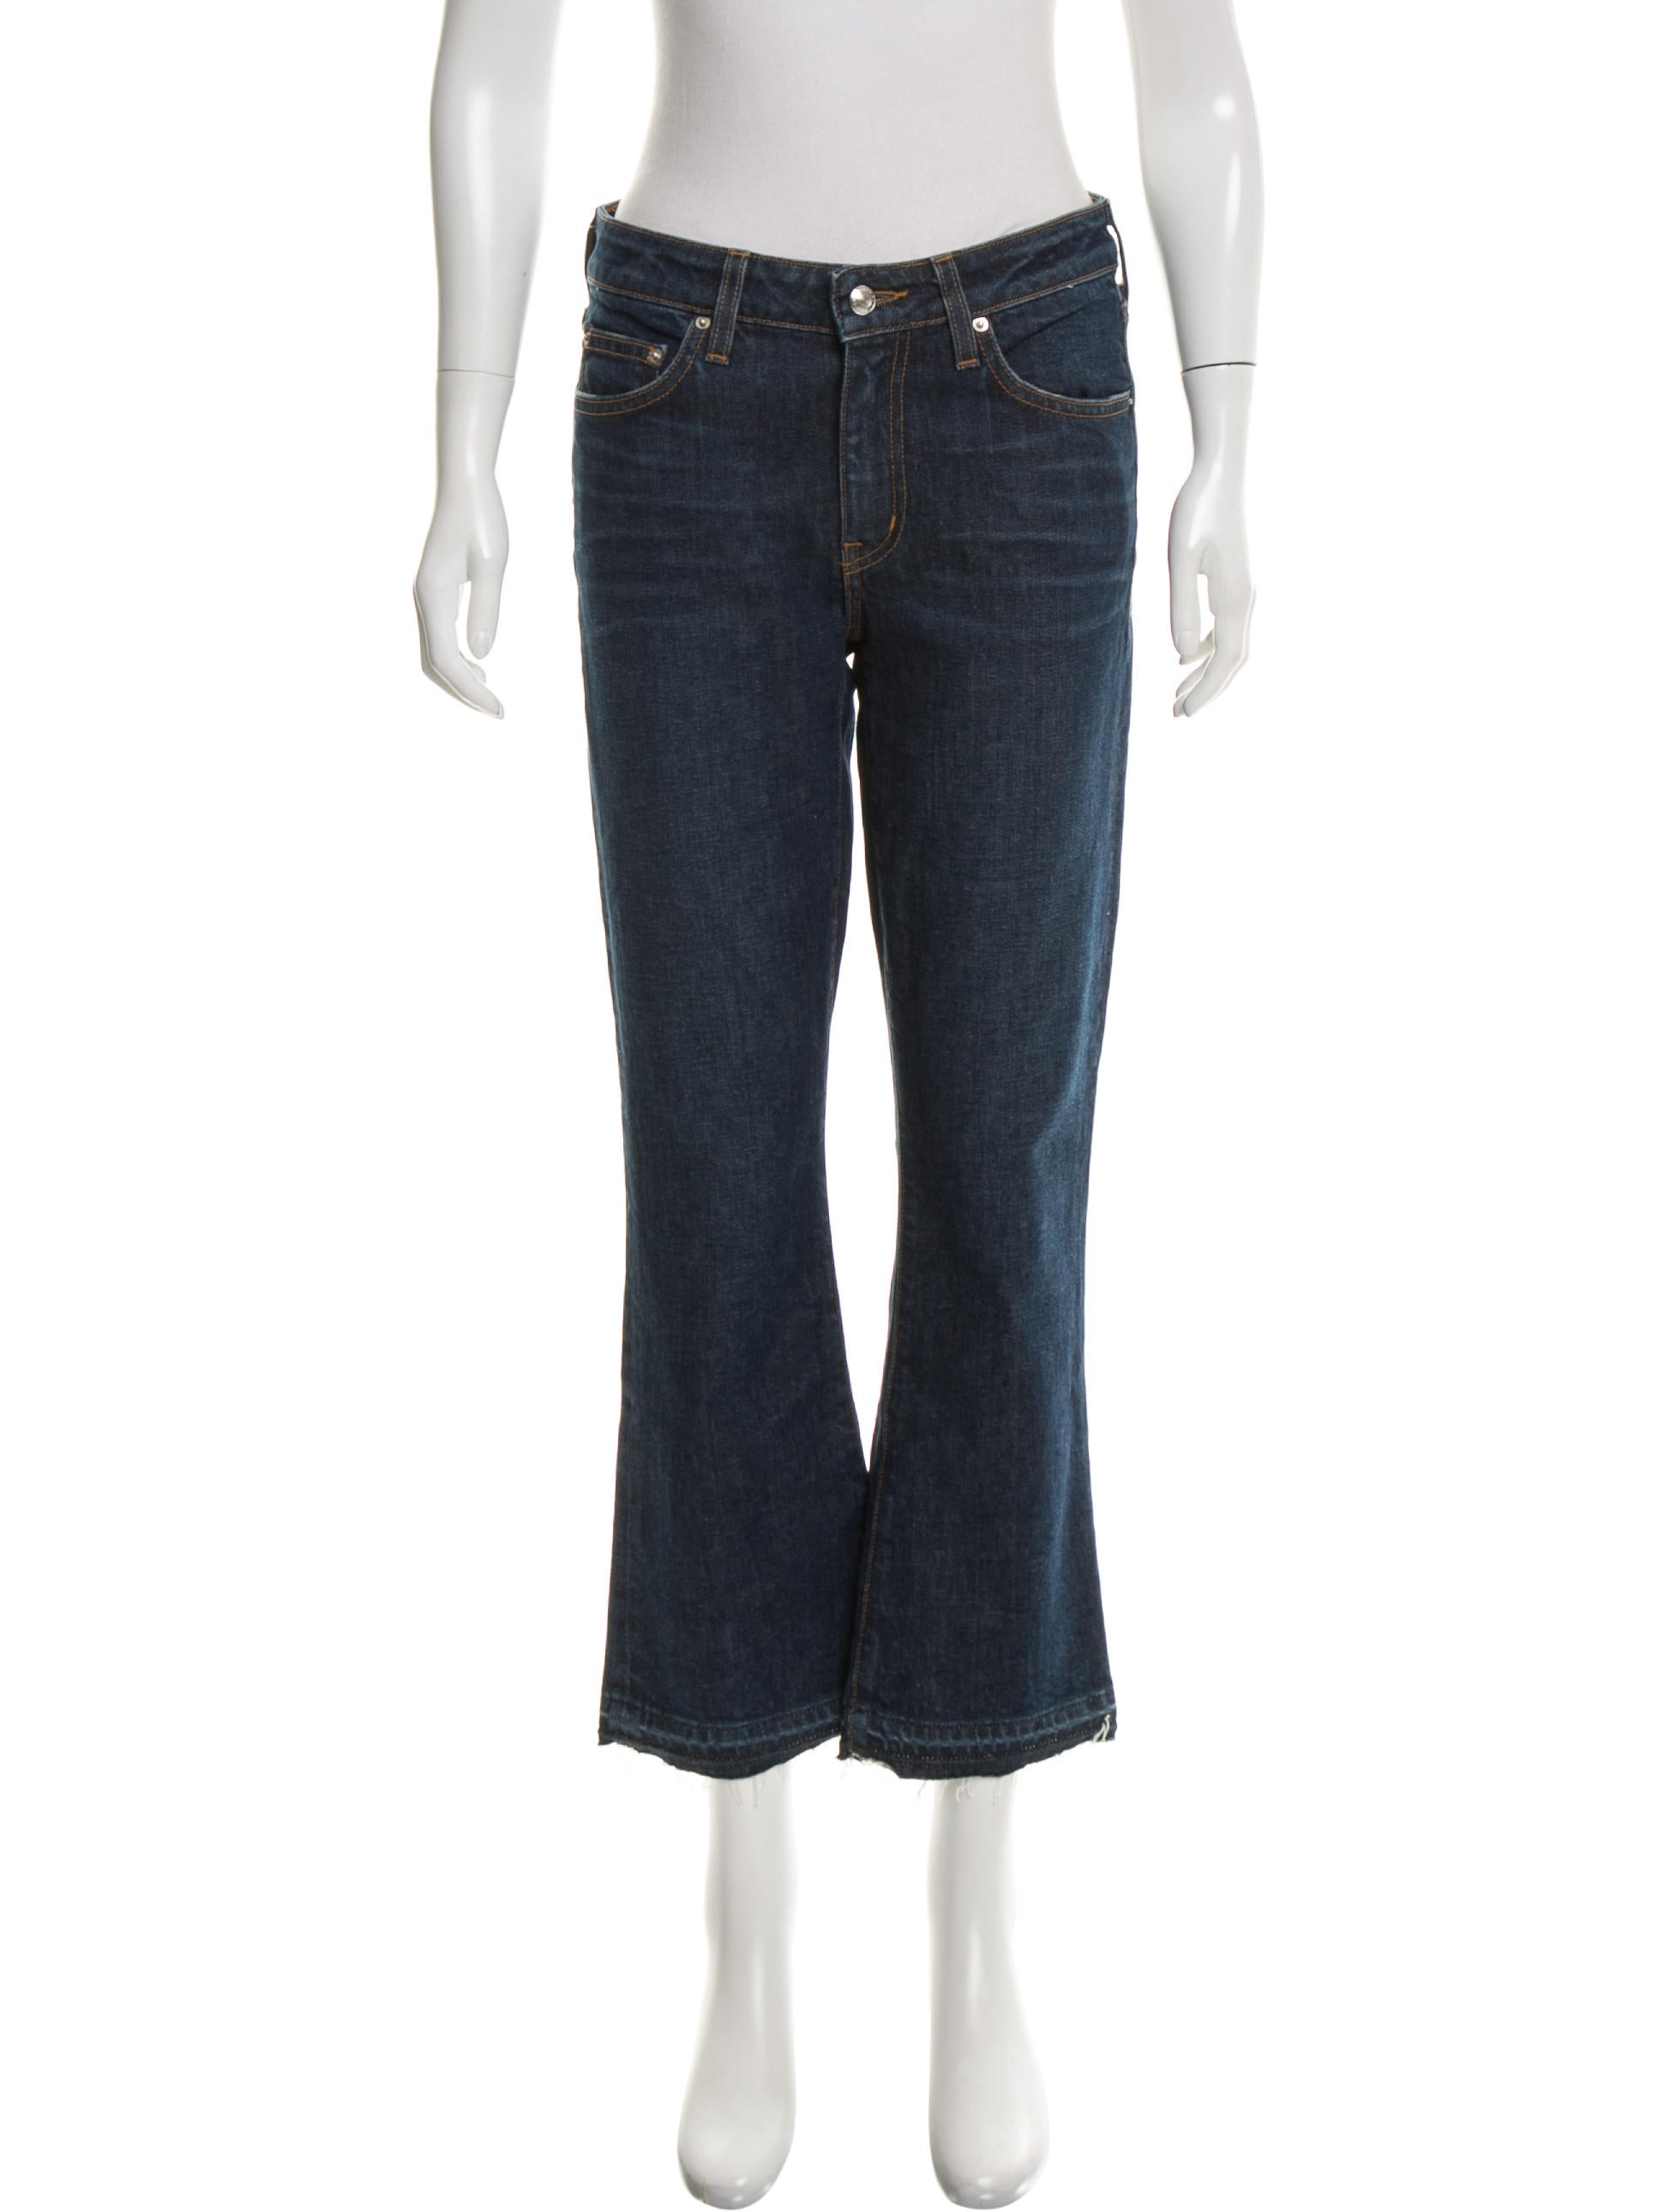 derek lam 10 crosby gia cropped flare jeans w tags clothing wdl25927 the realreal. Black Bedroom Furniture Sets. Home Design Ideas